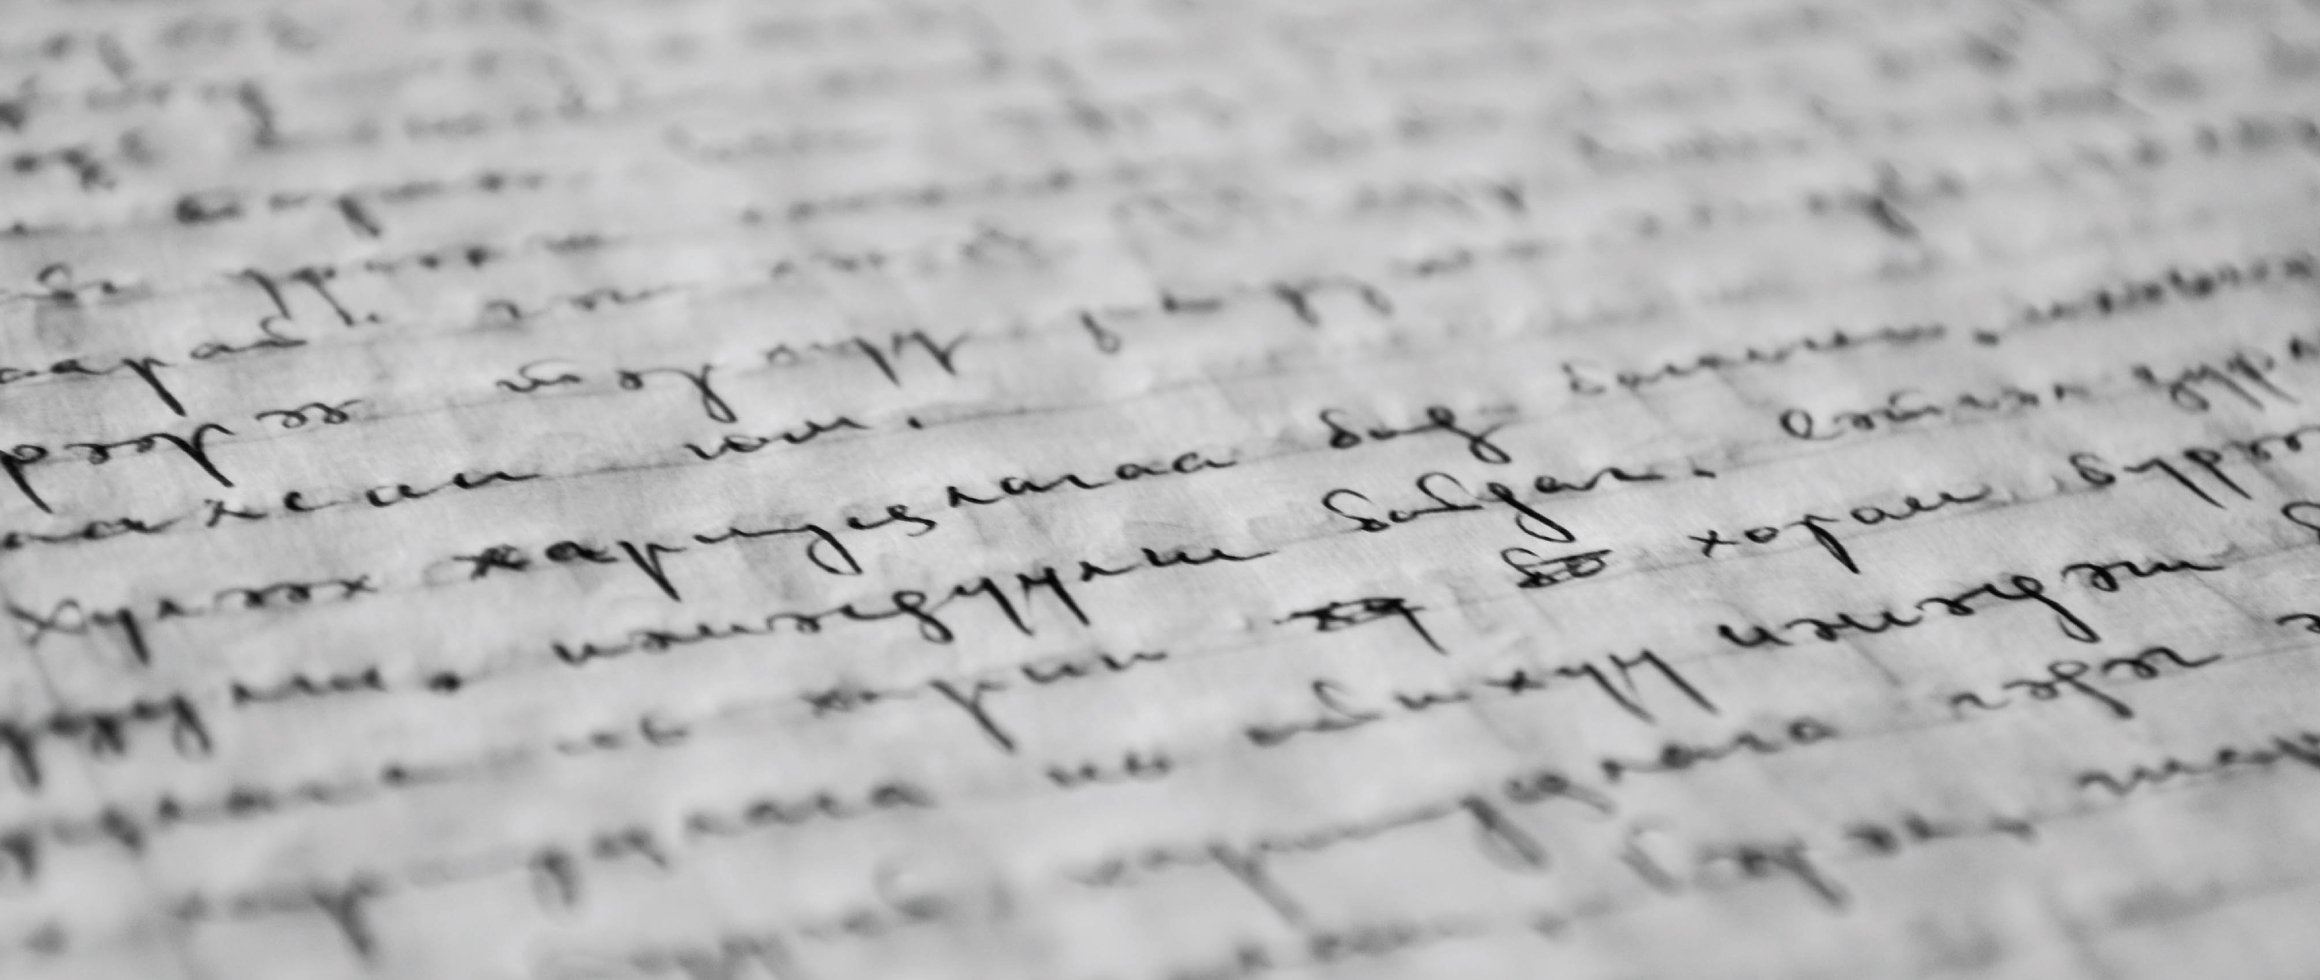 Not-All-Those-Who-Wander-Are-Lost-An-Open-Letter